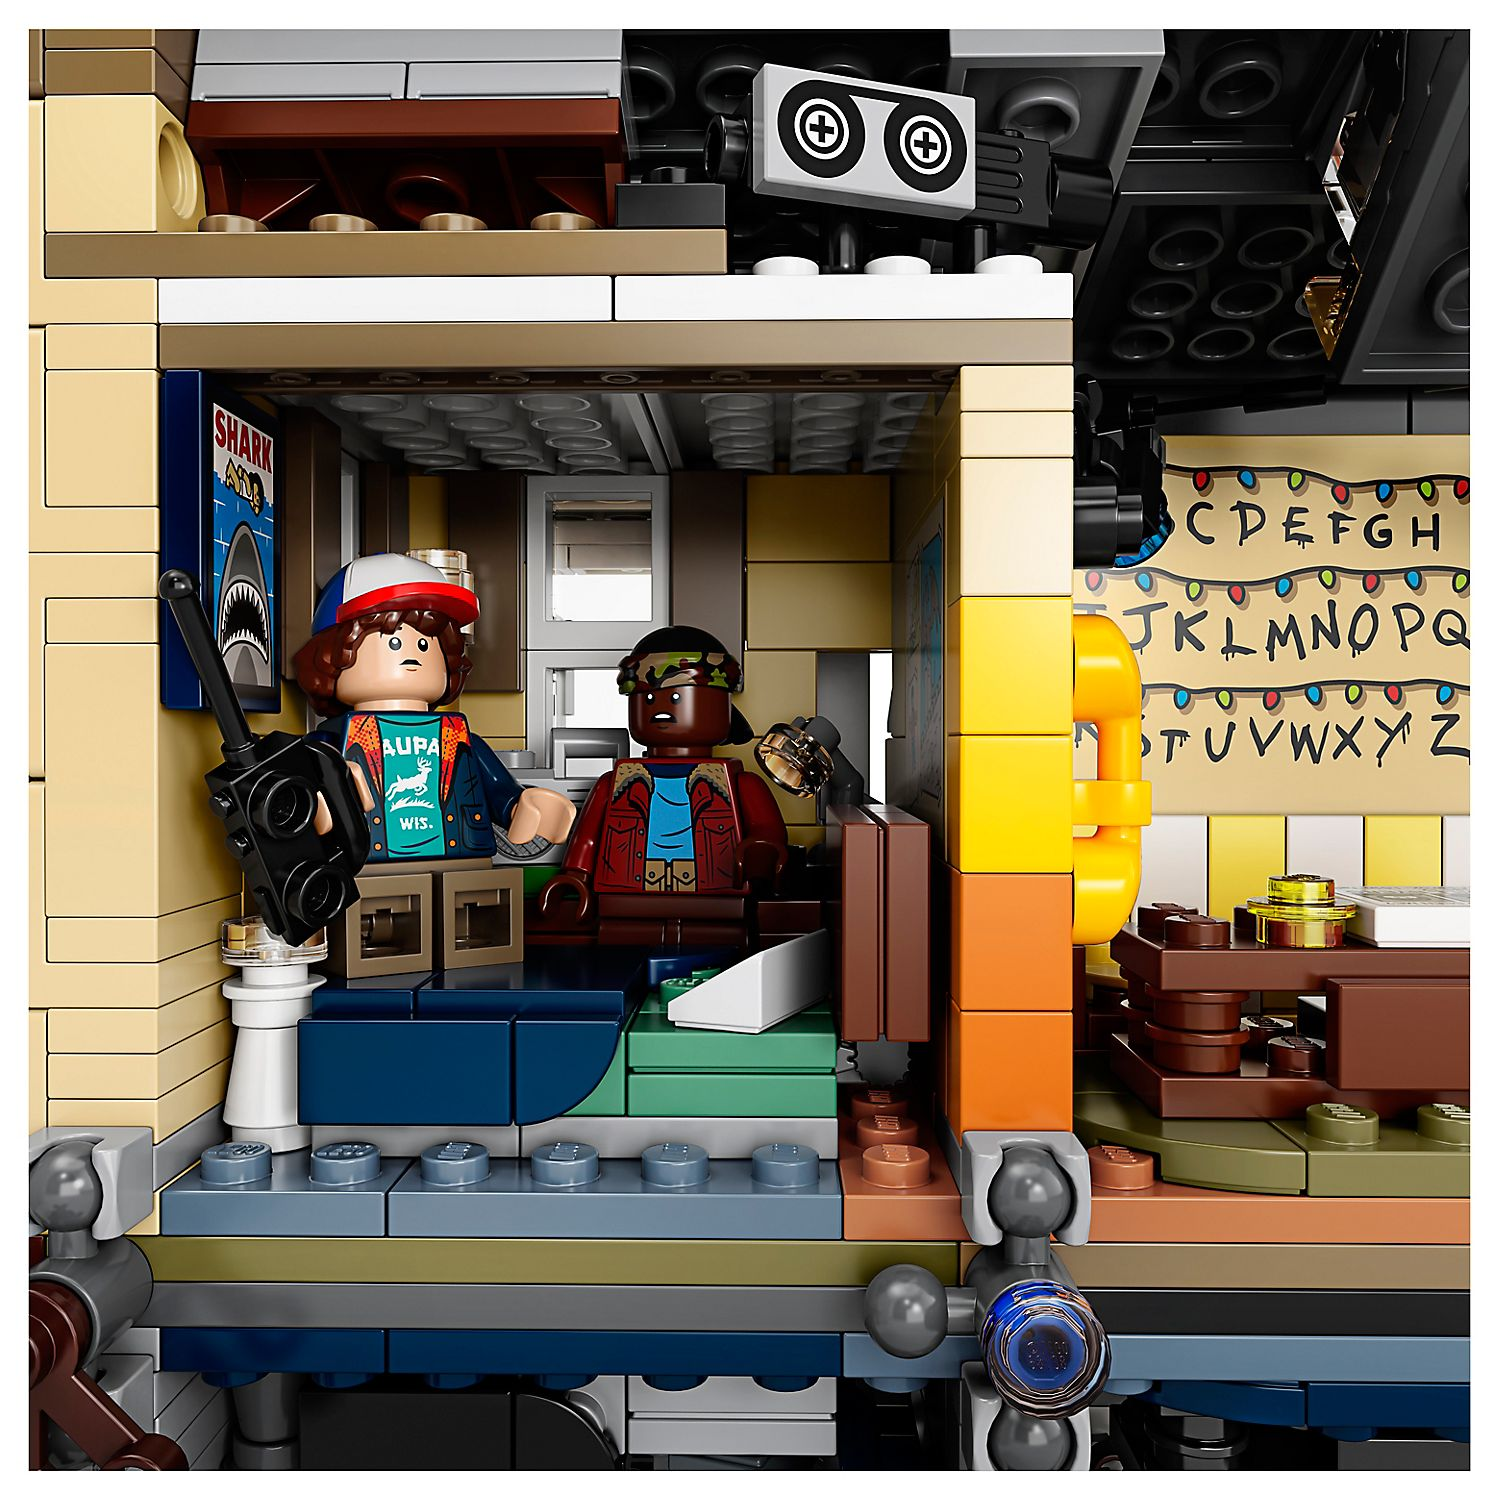 Upside Down Lego Set - Stranger Things